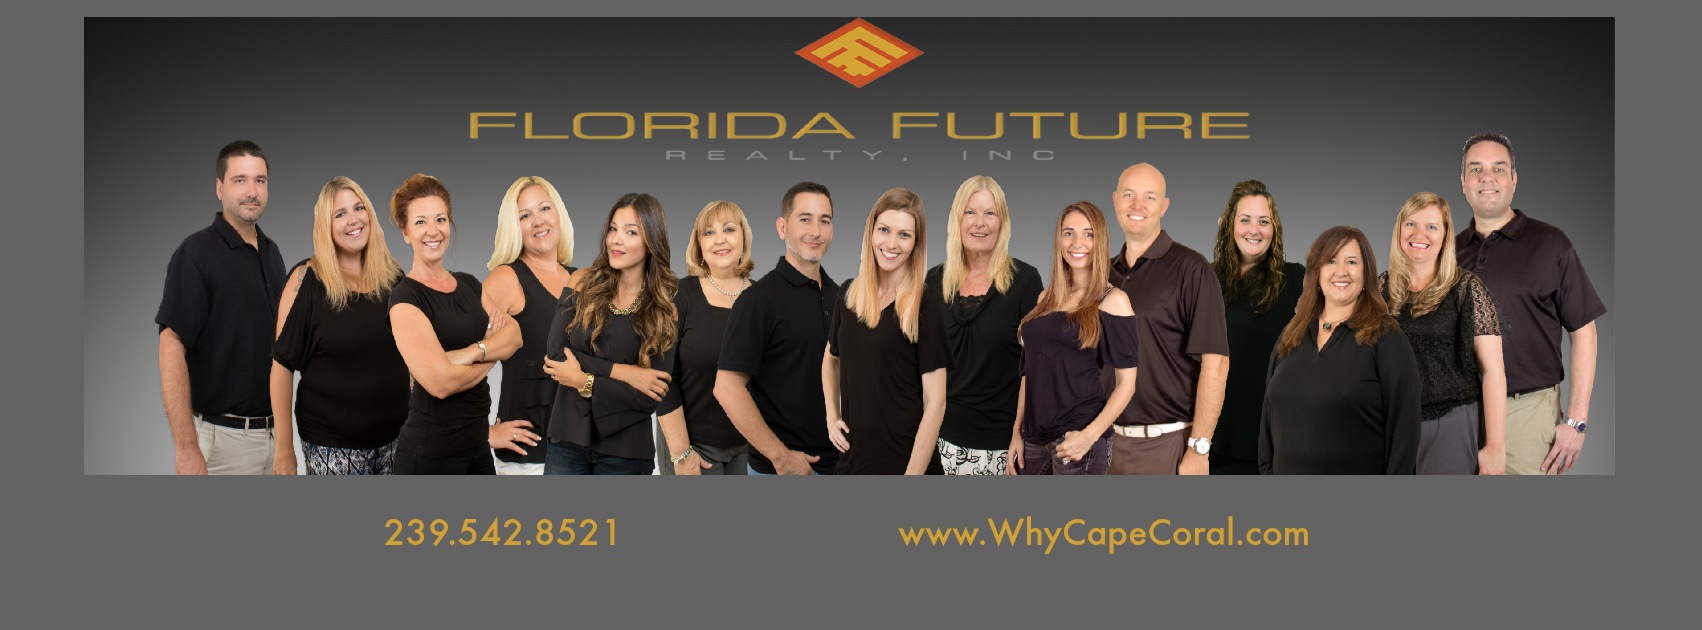 Florida Future Realty, Inc.